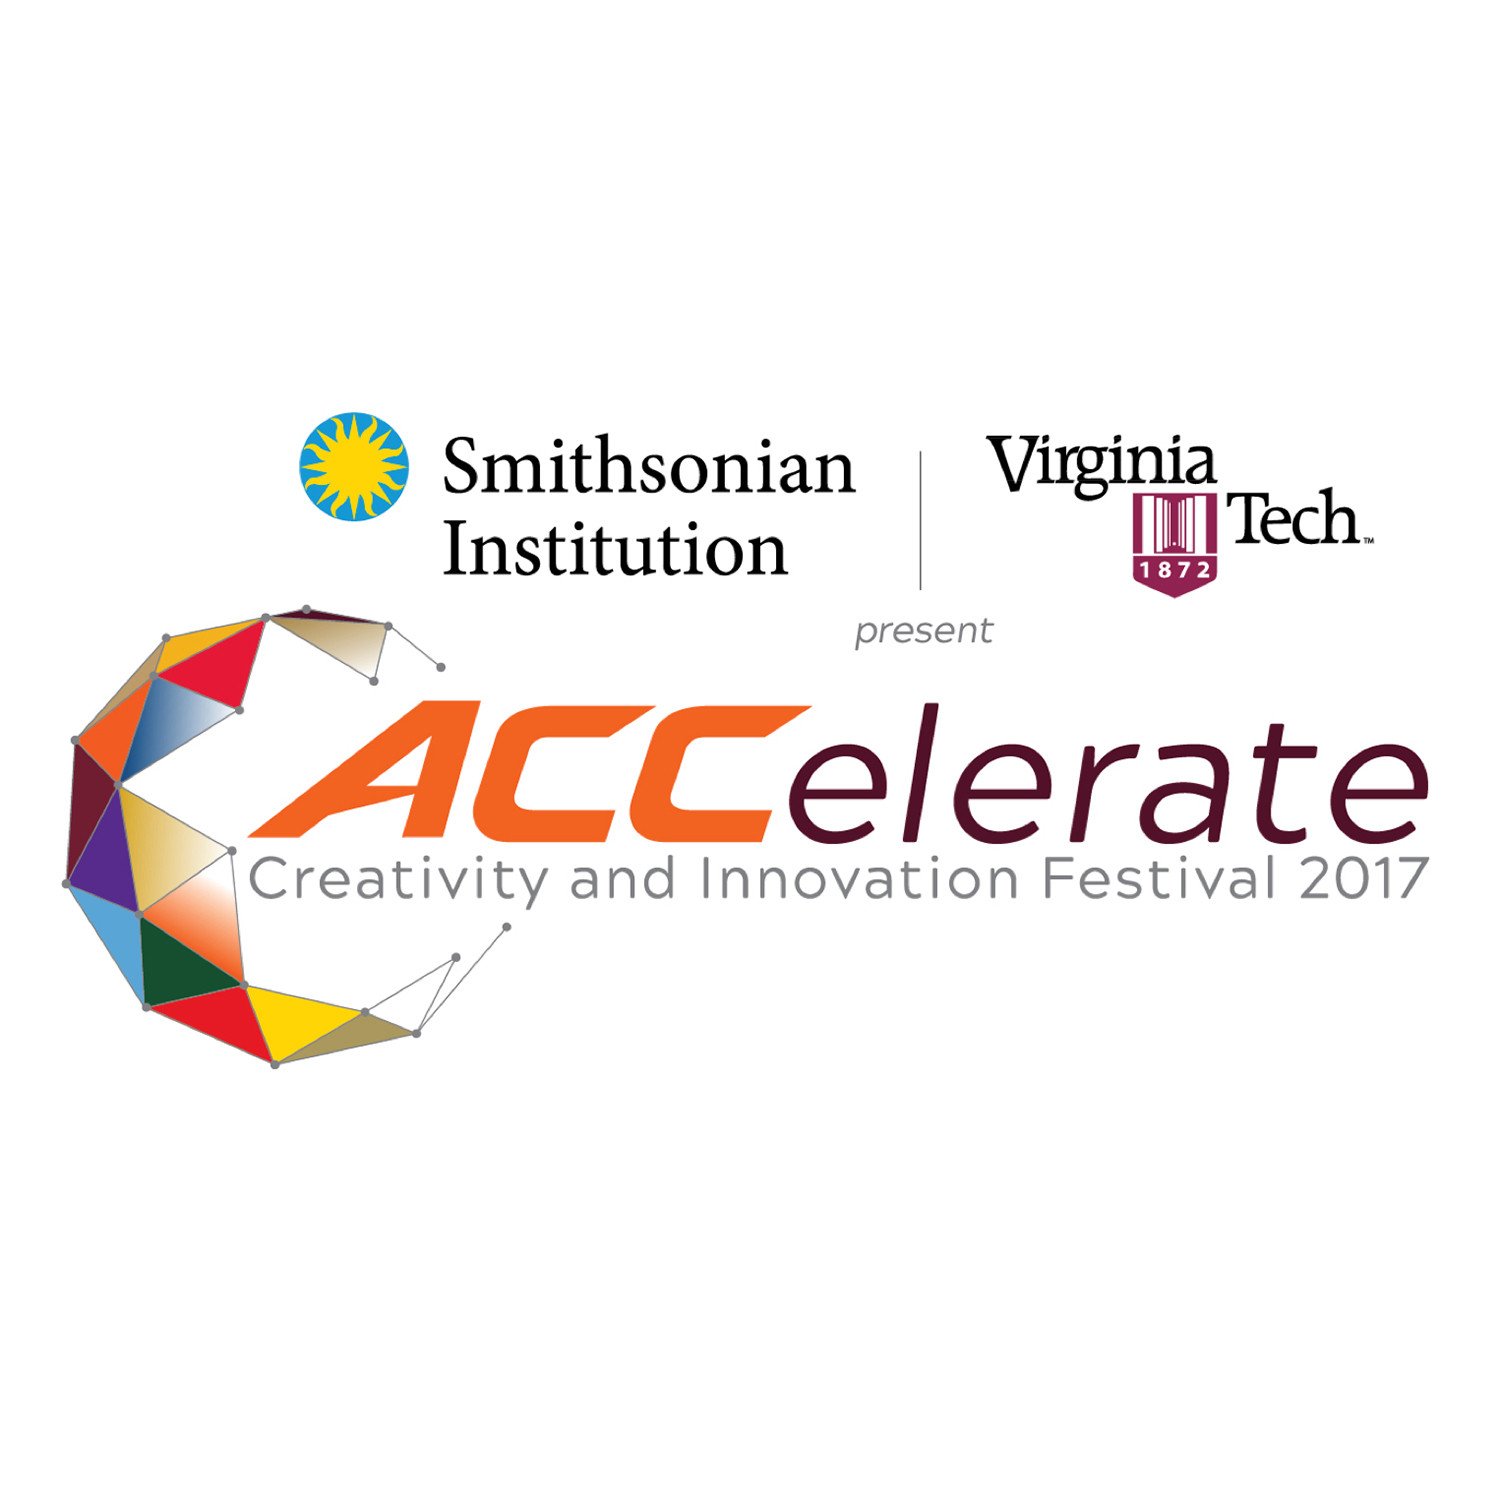 Smithsonian To Display Clemson Research Addressing Global Challenges